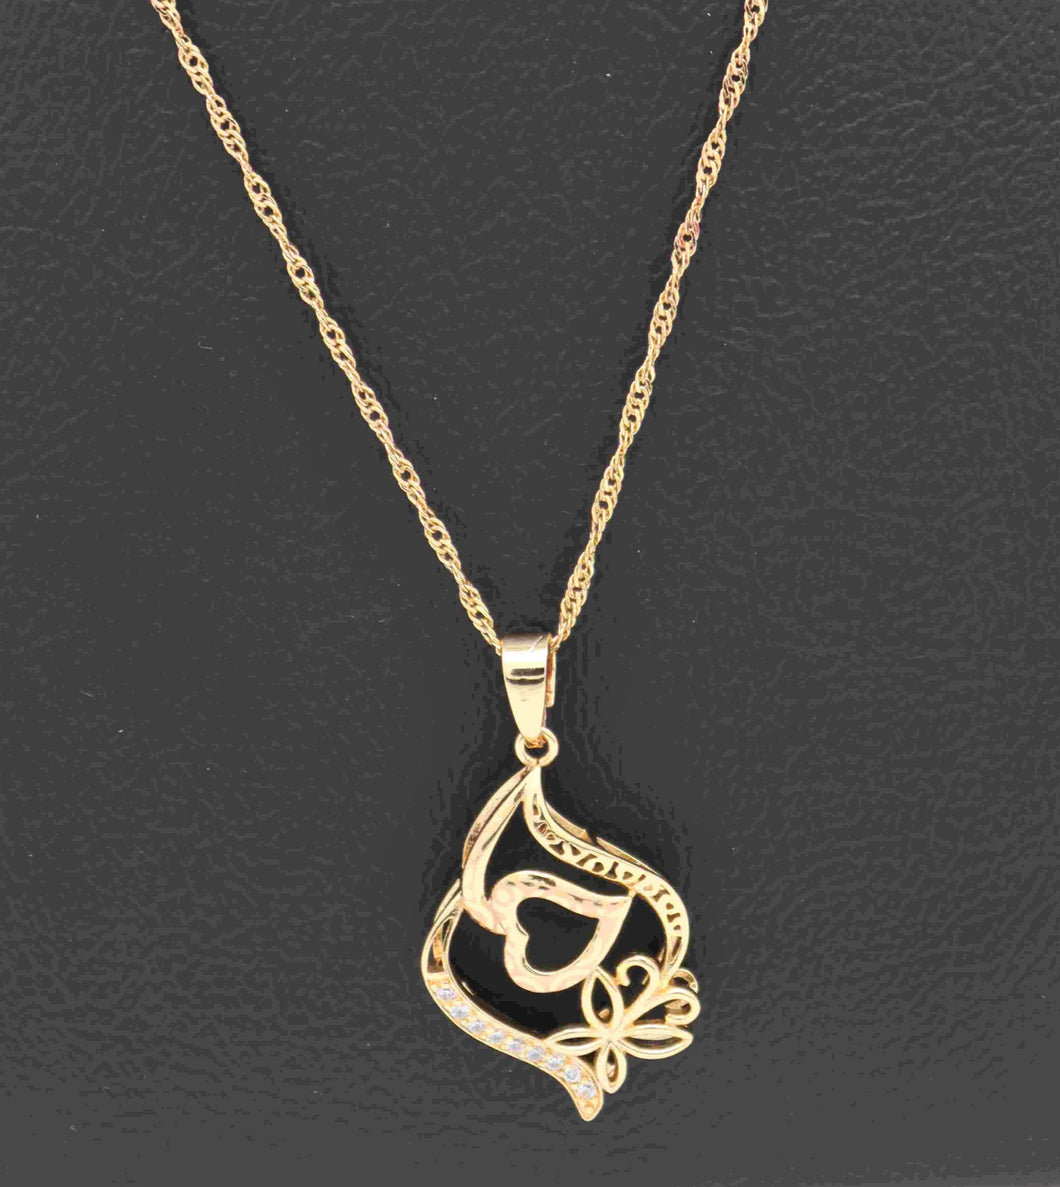 18kt Pendant Necklace - Valentine Collection series